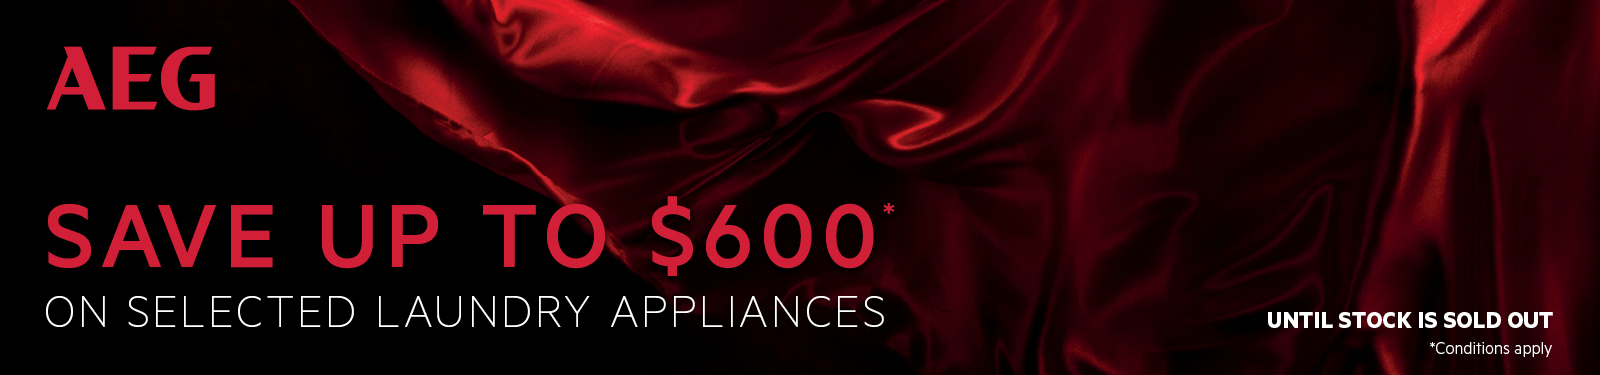 Save Up To $600 On Selected AEG Laundry Appliances